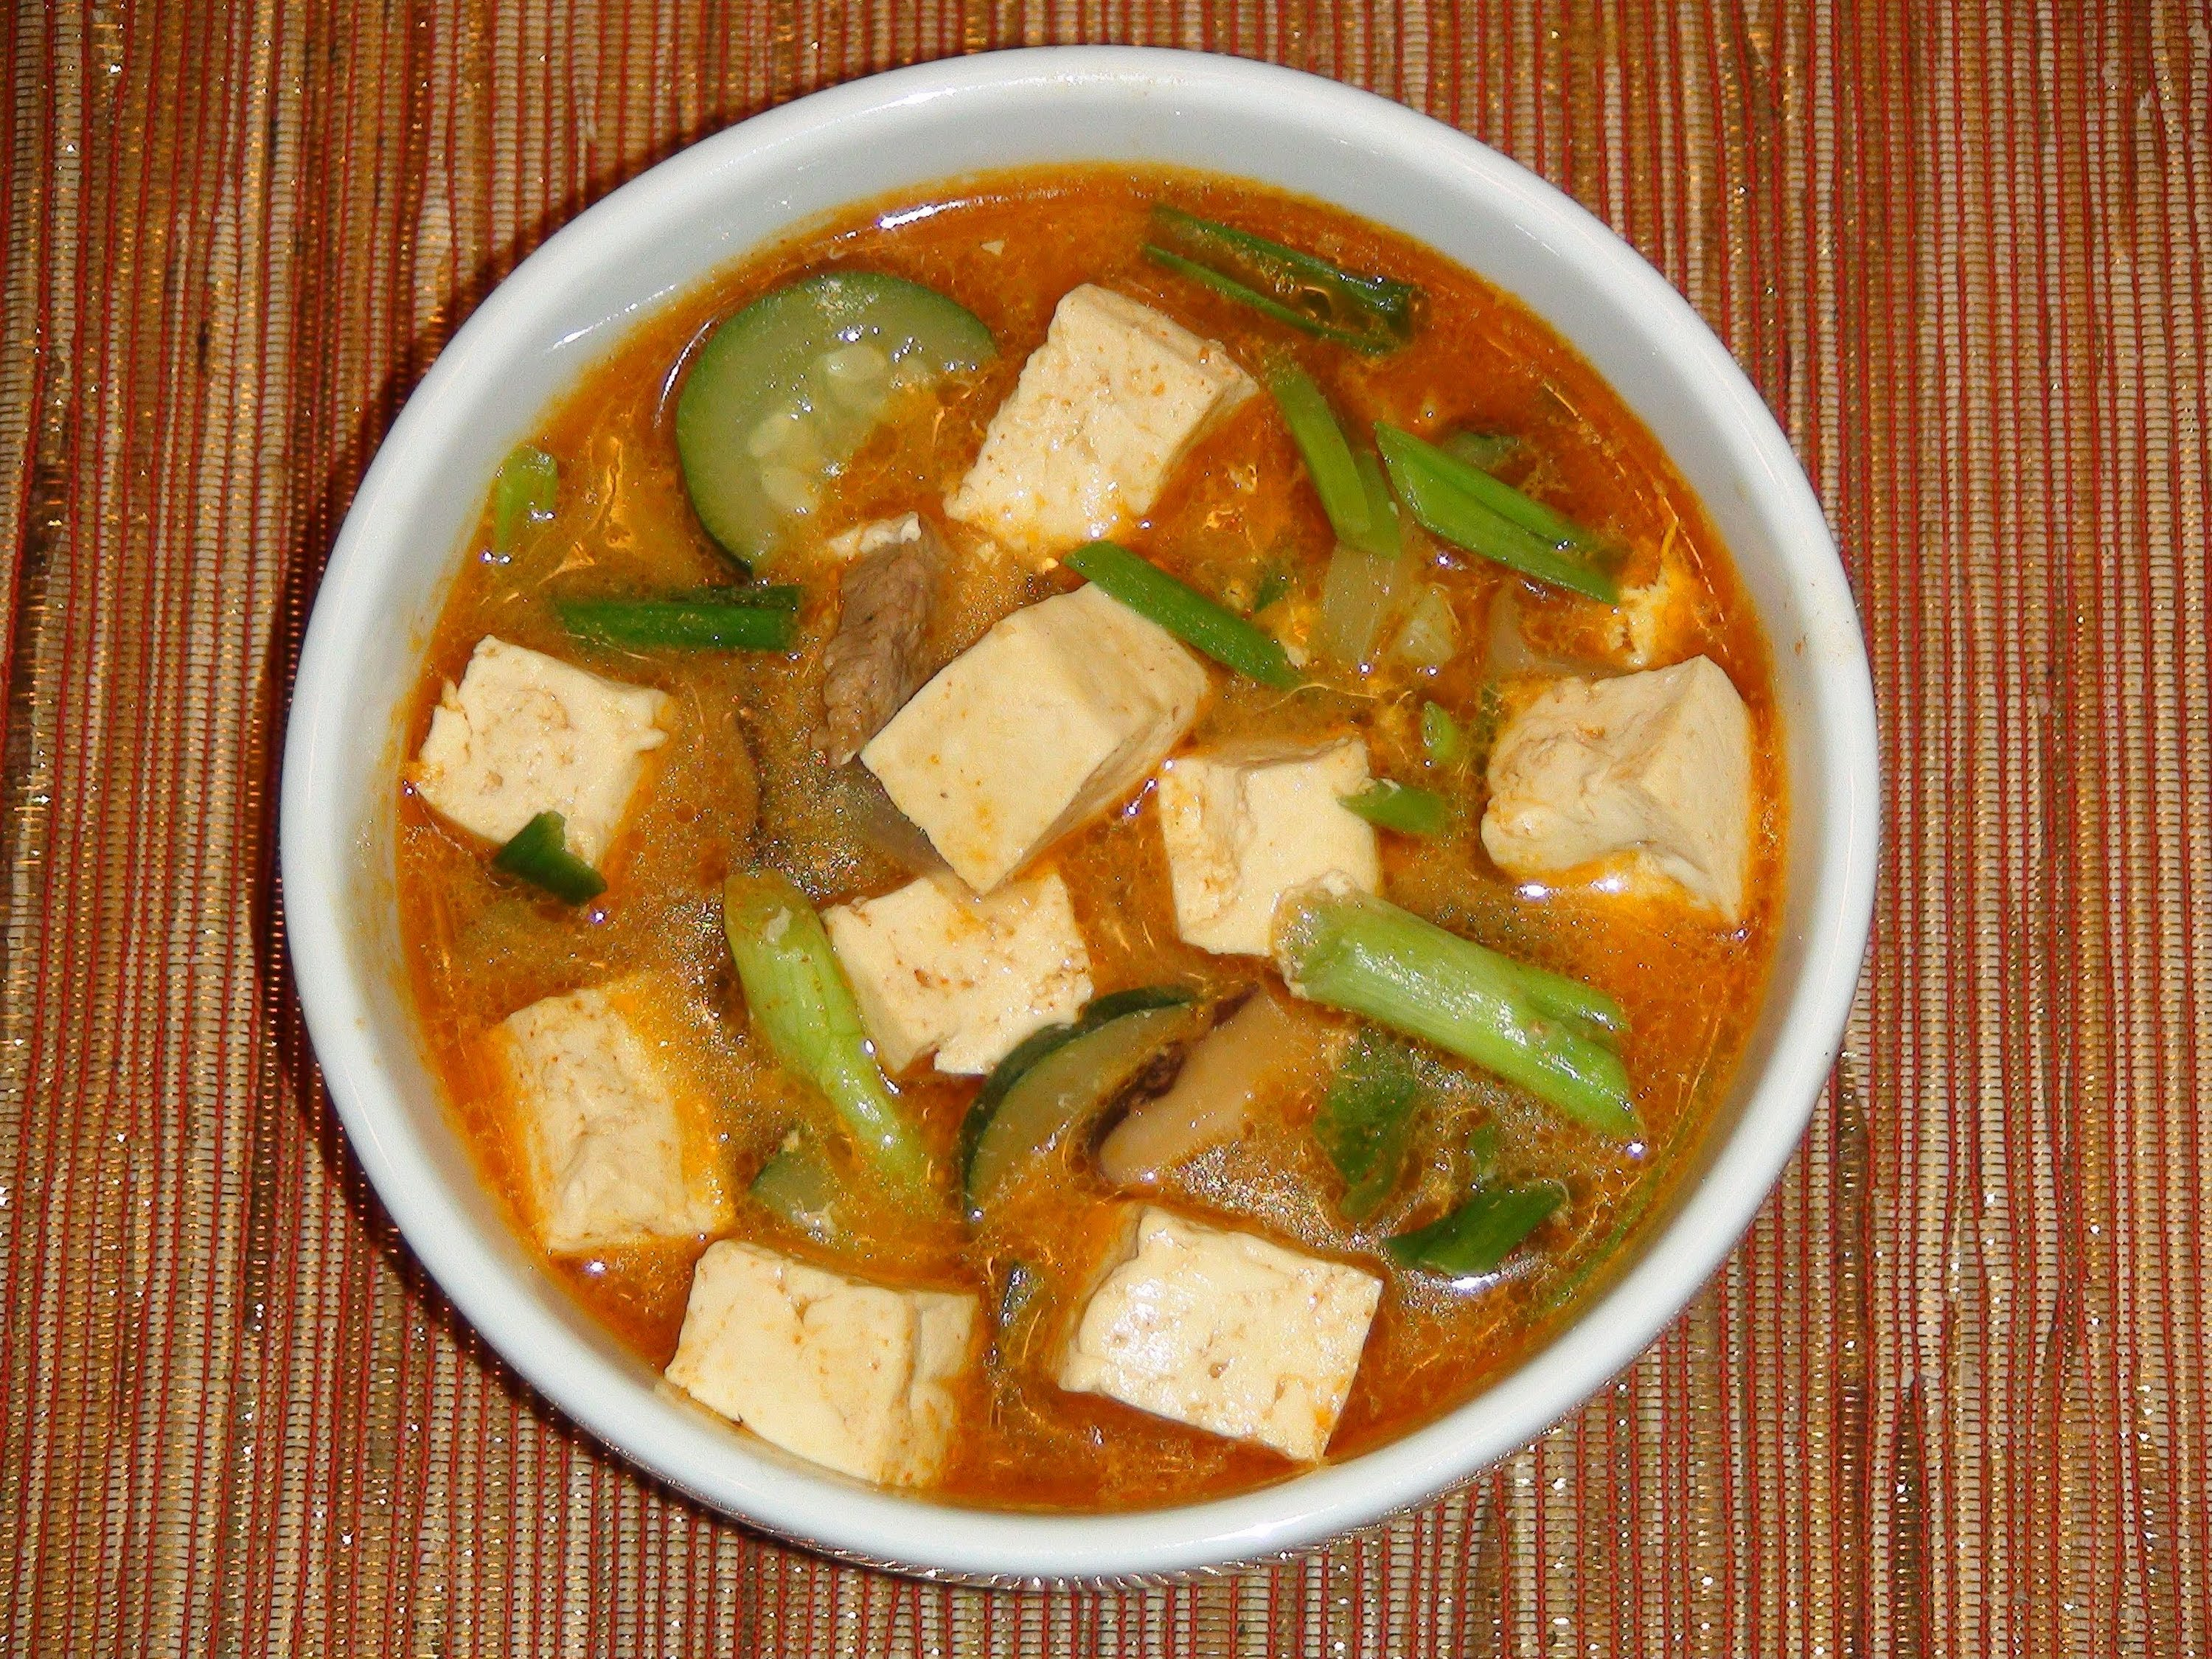 Korean Tofu and Vegetable Soup